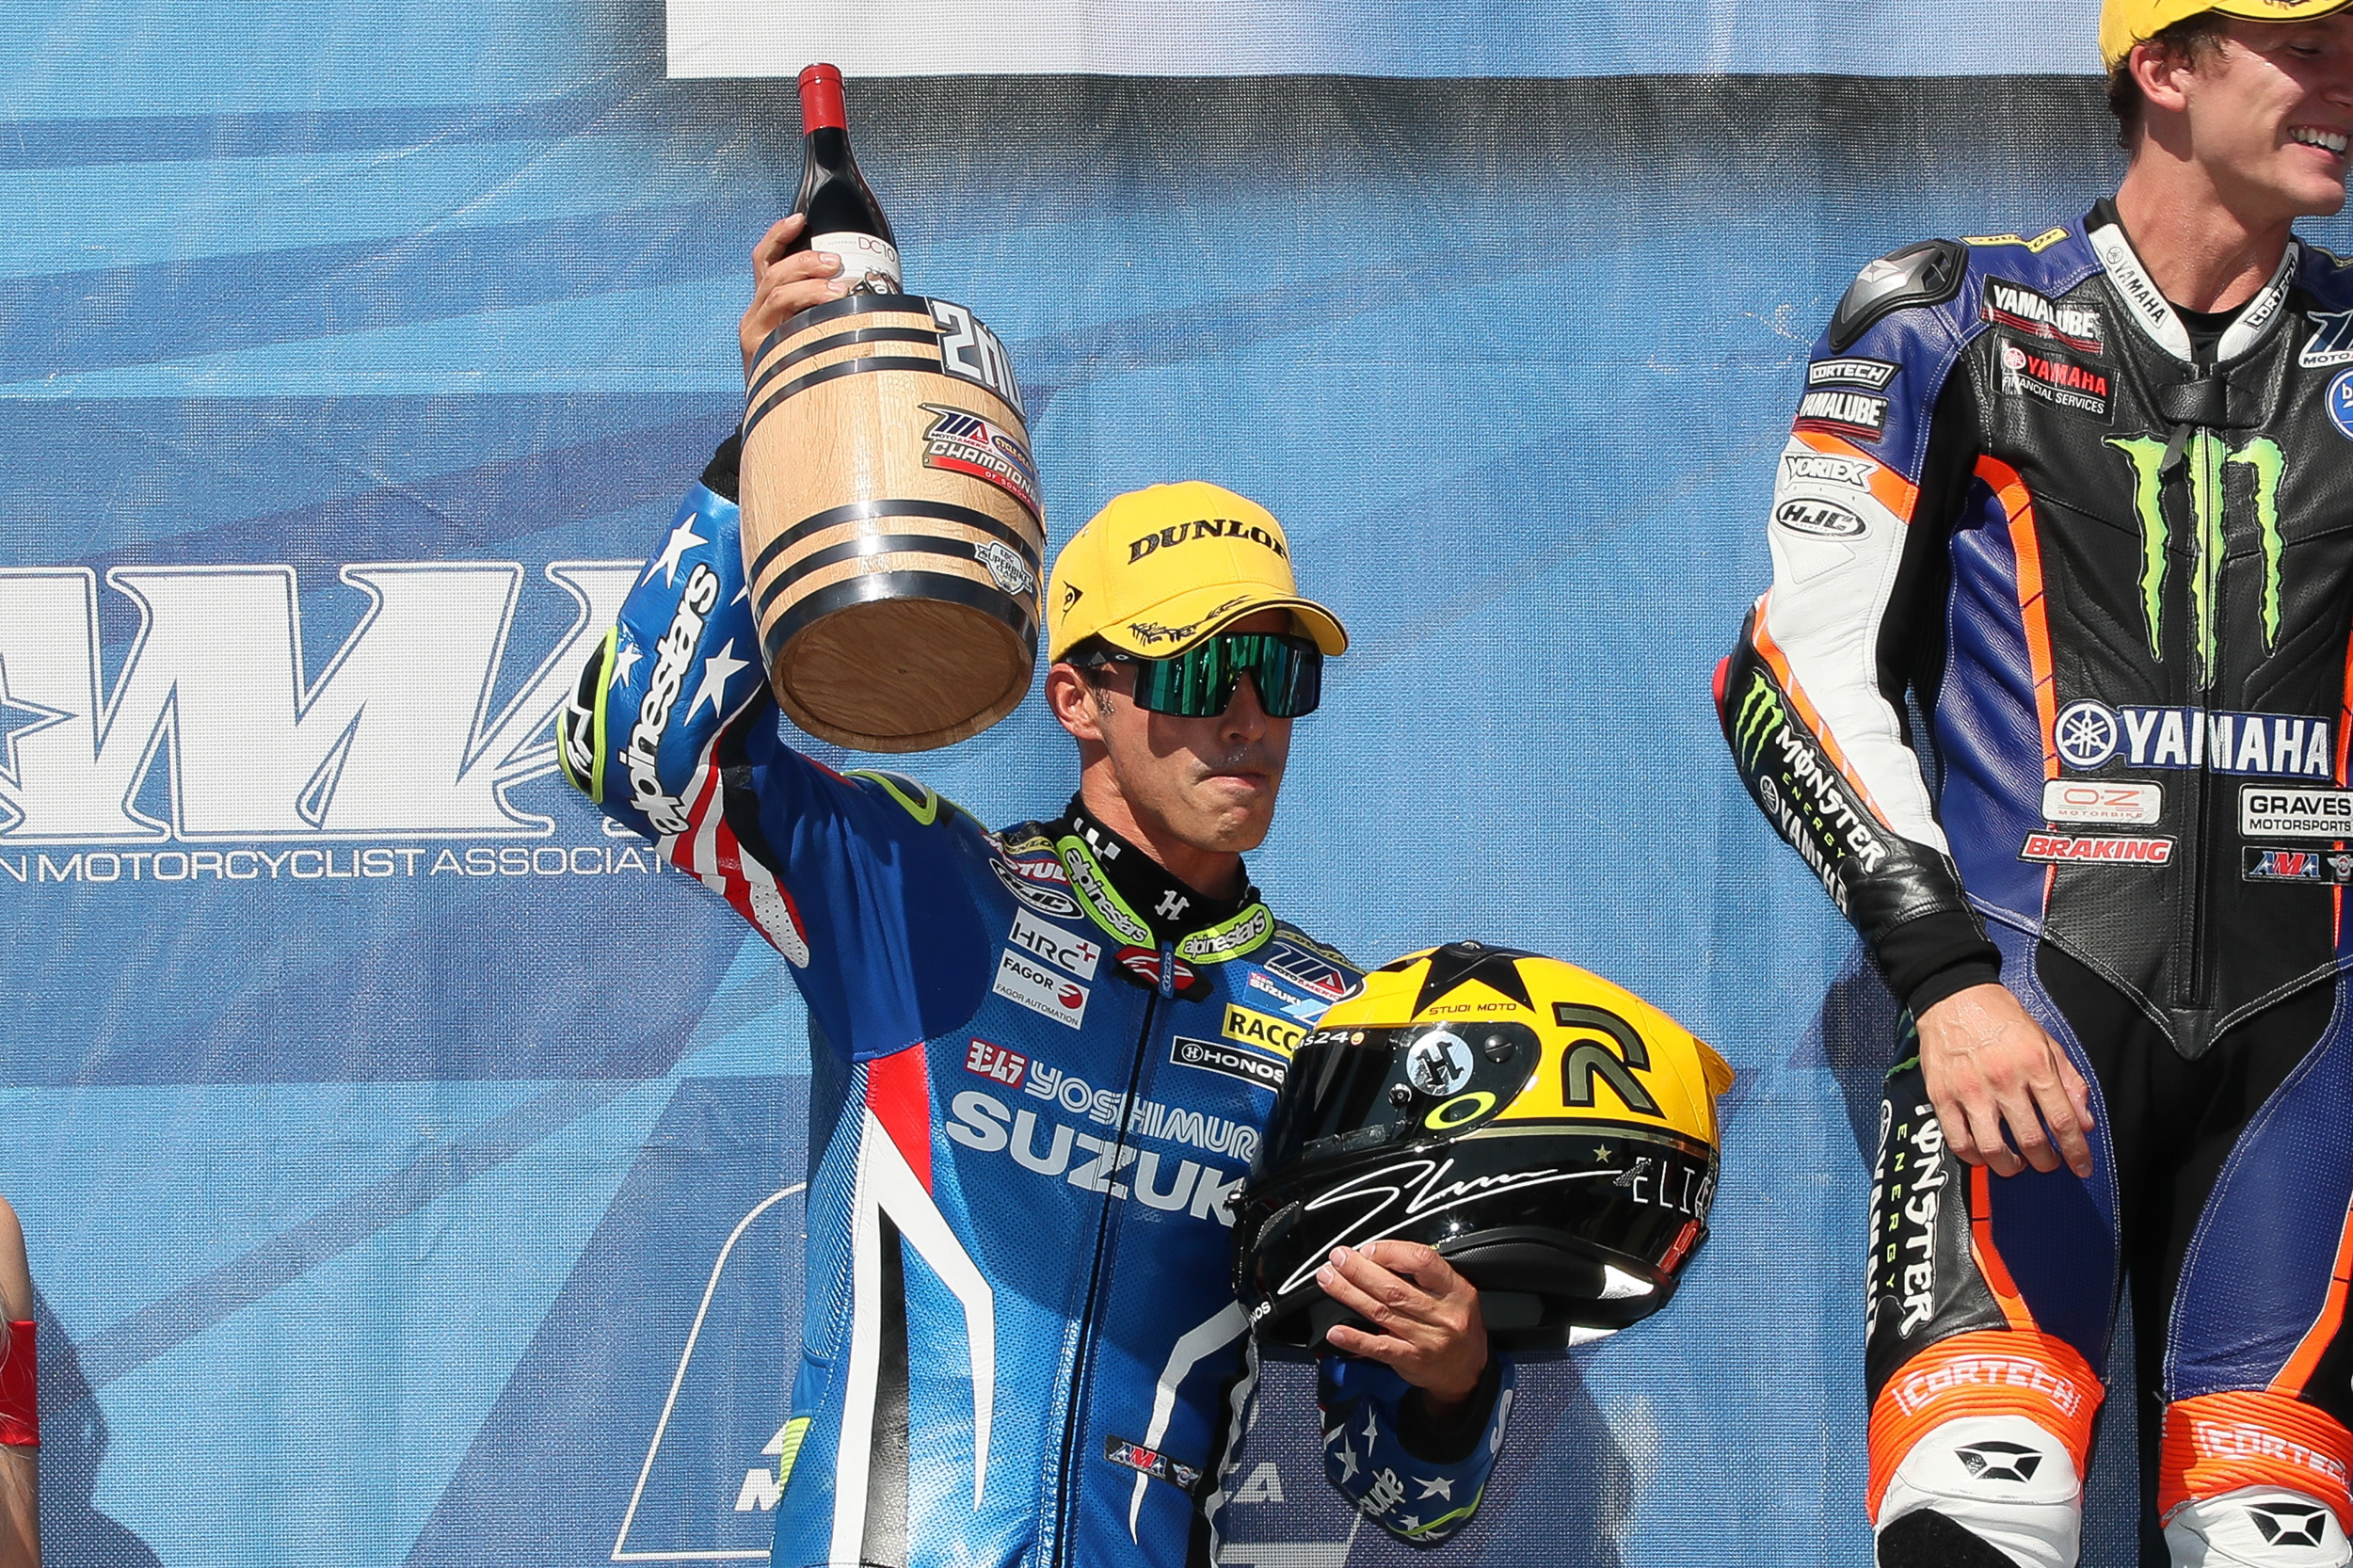 Toni Elias (#24) celebrates second place on the podium with Sonoma's wine-inspired trophy